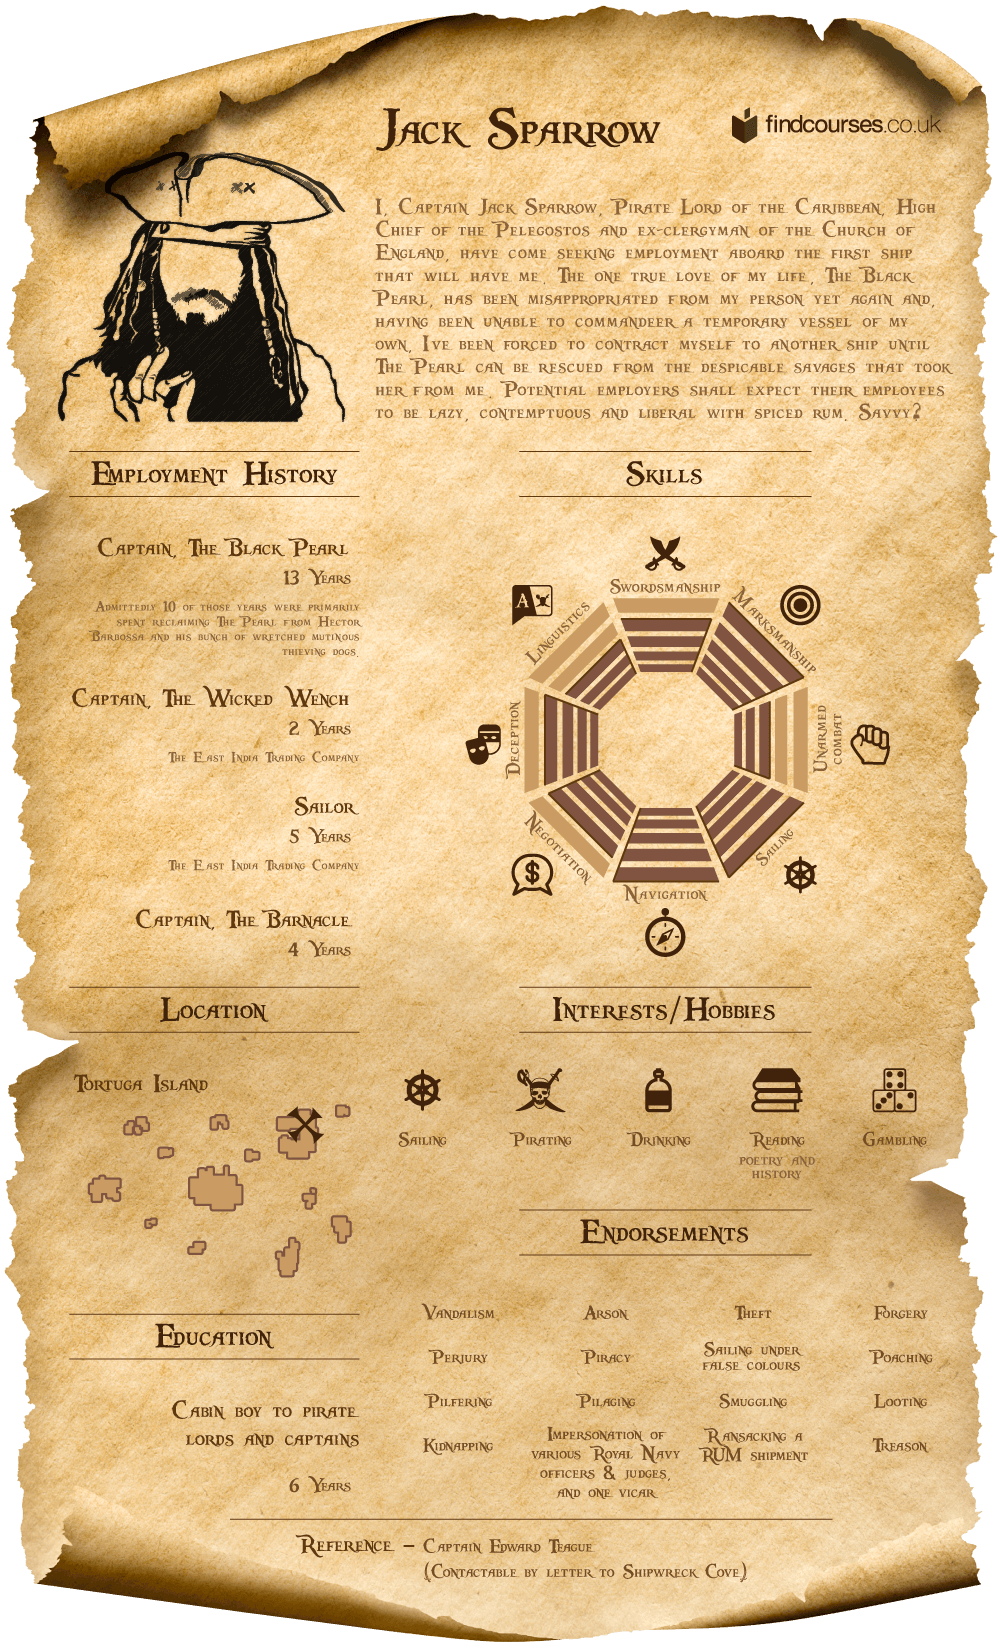 resume image for pirate jack sparrow on old parchment